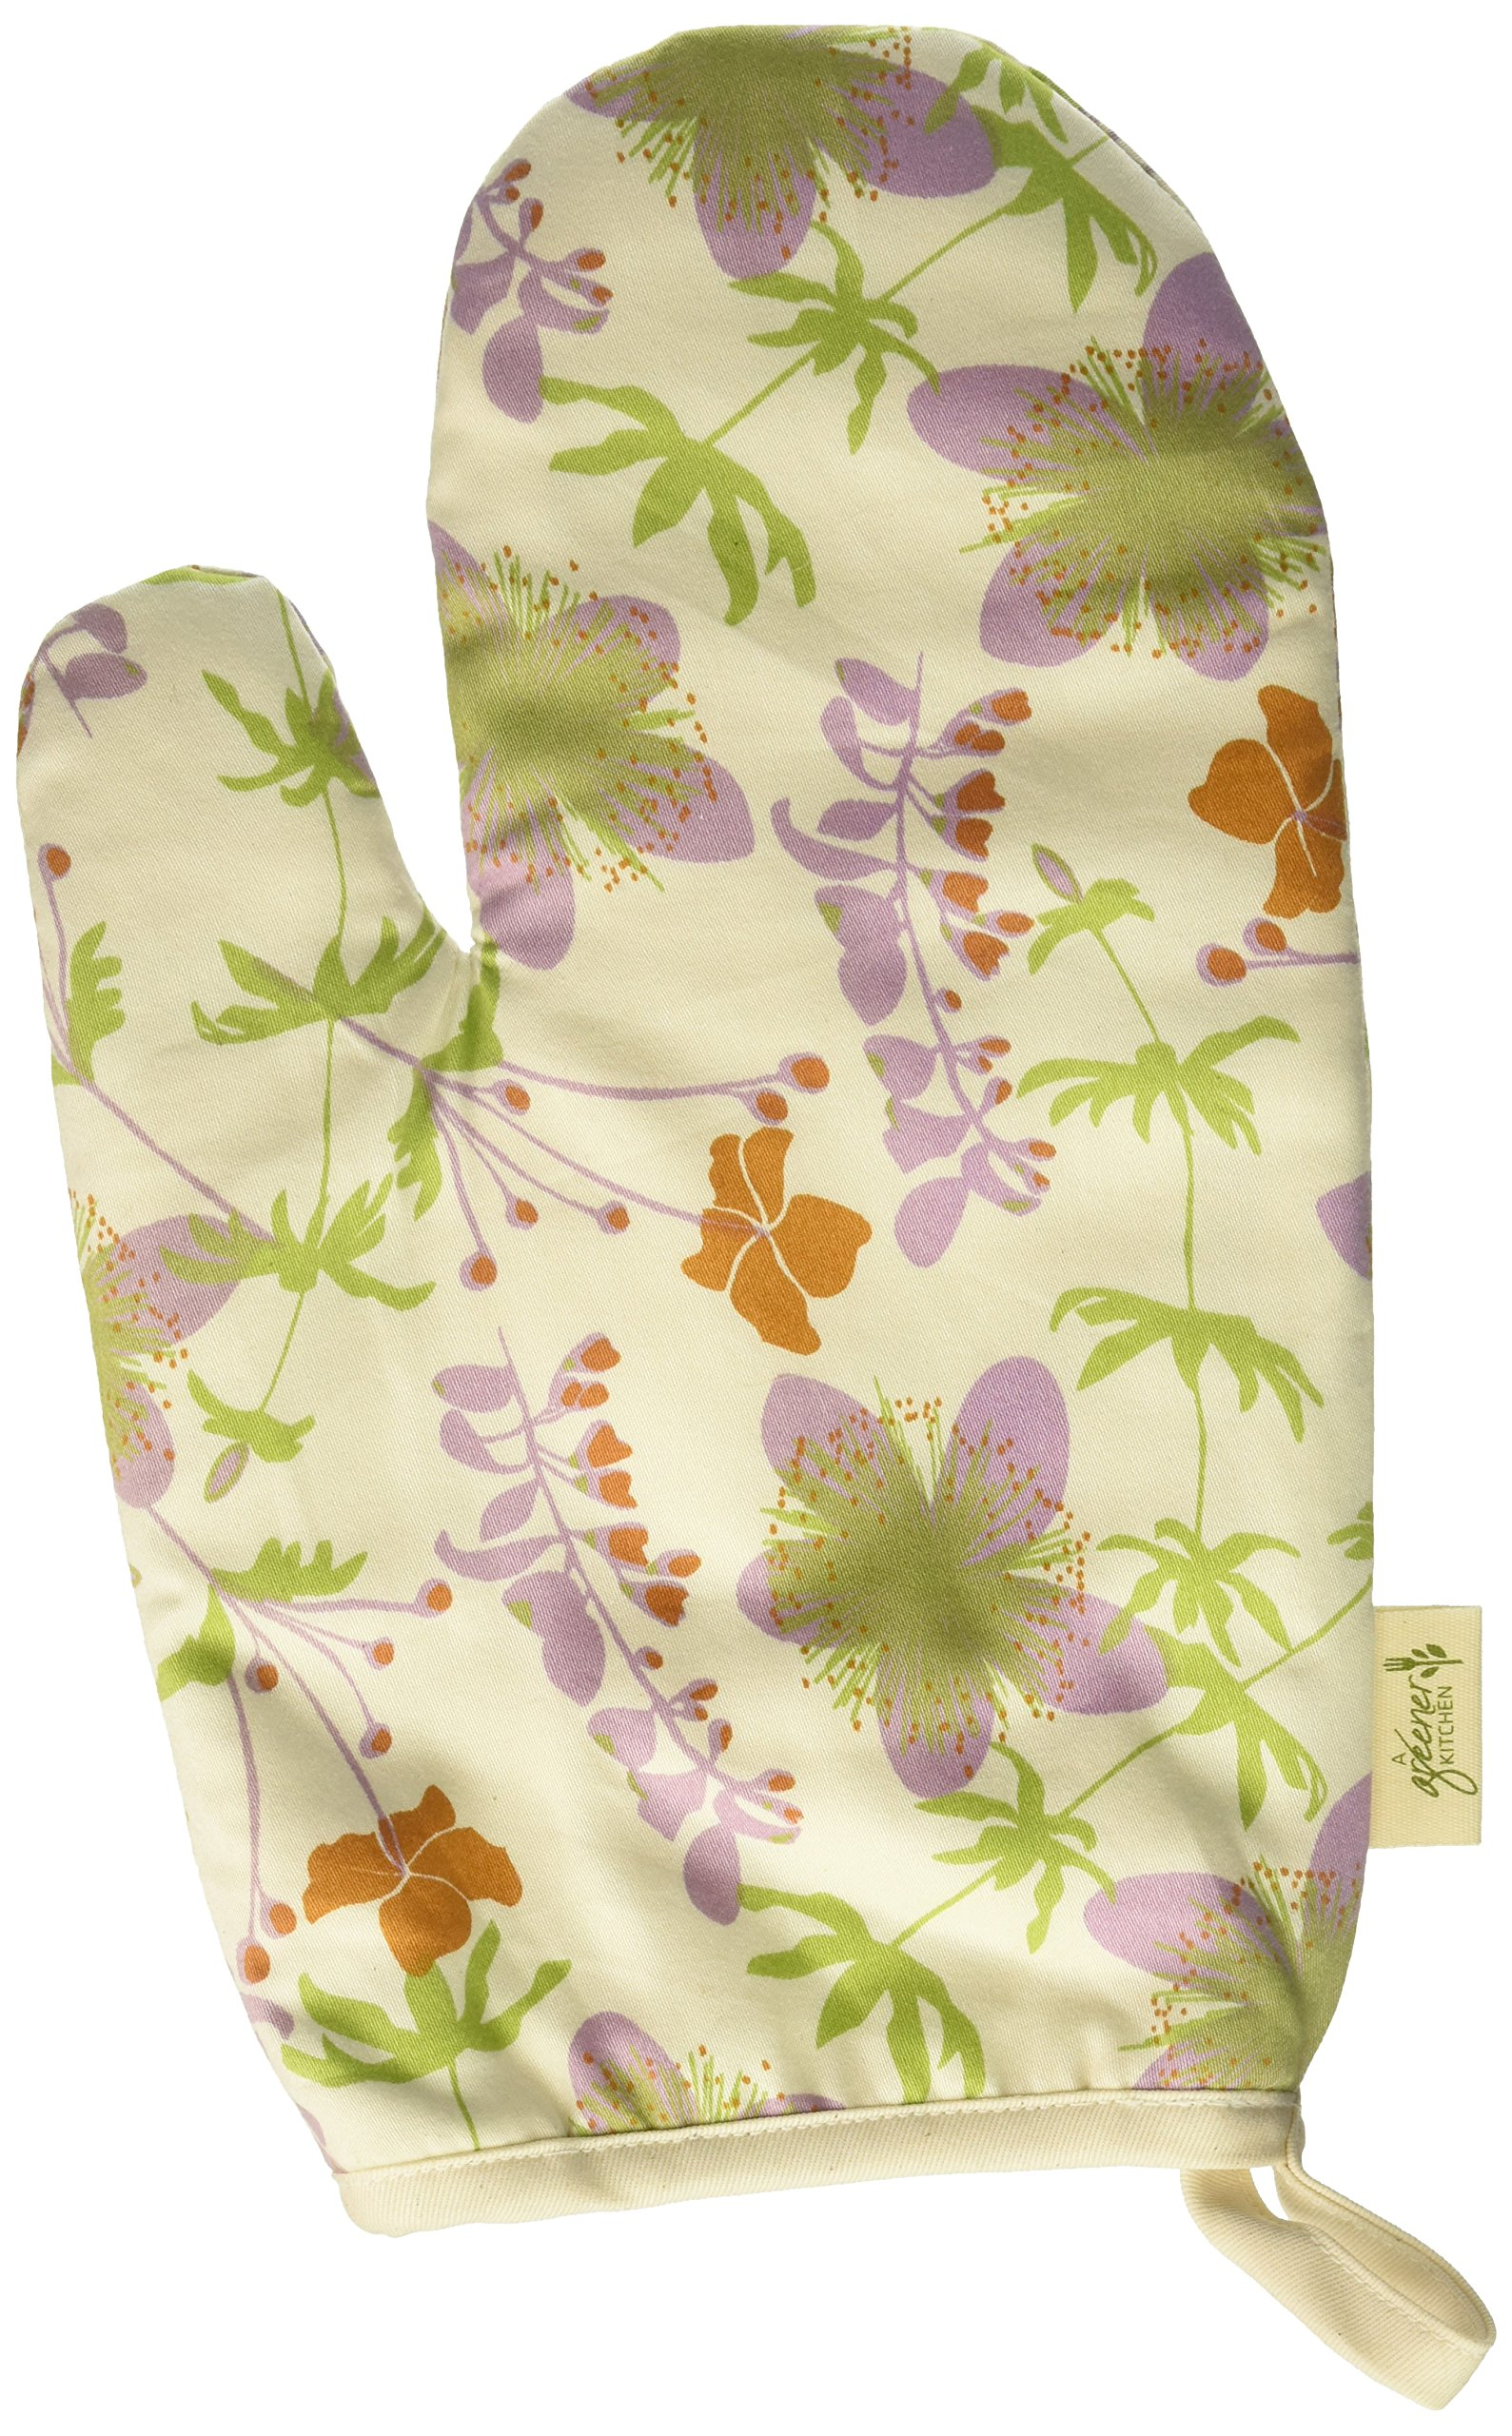 A Greener Kitchen OM002 Organic Cotton Oven Mitt - Garden-Natural by A Greener Kitchen